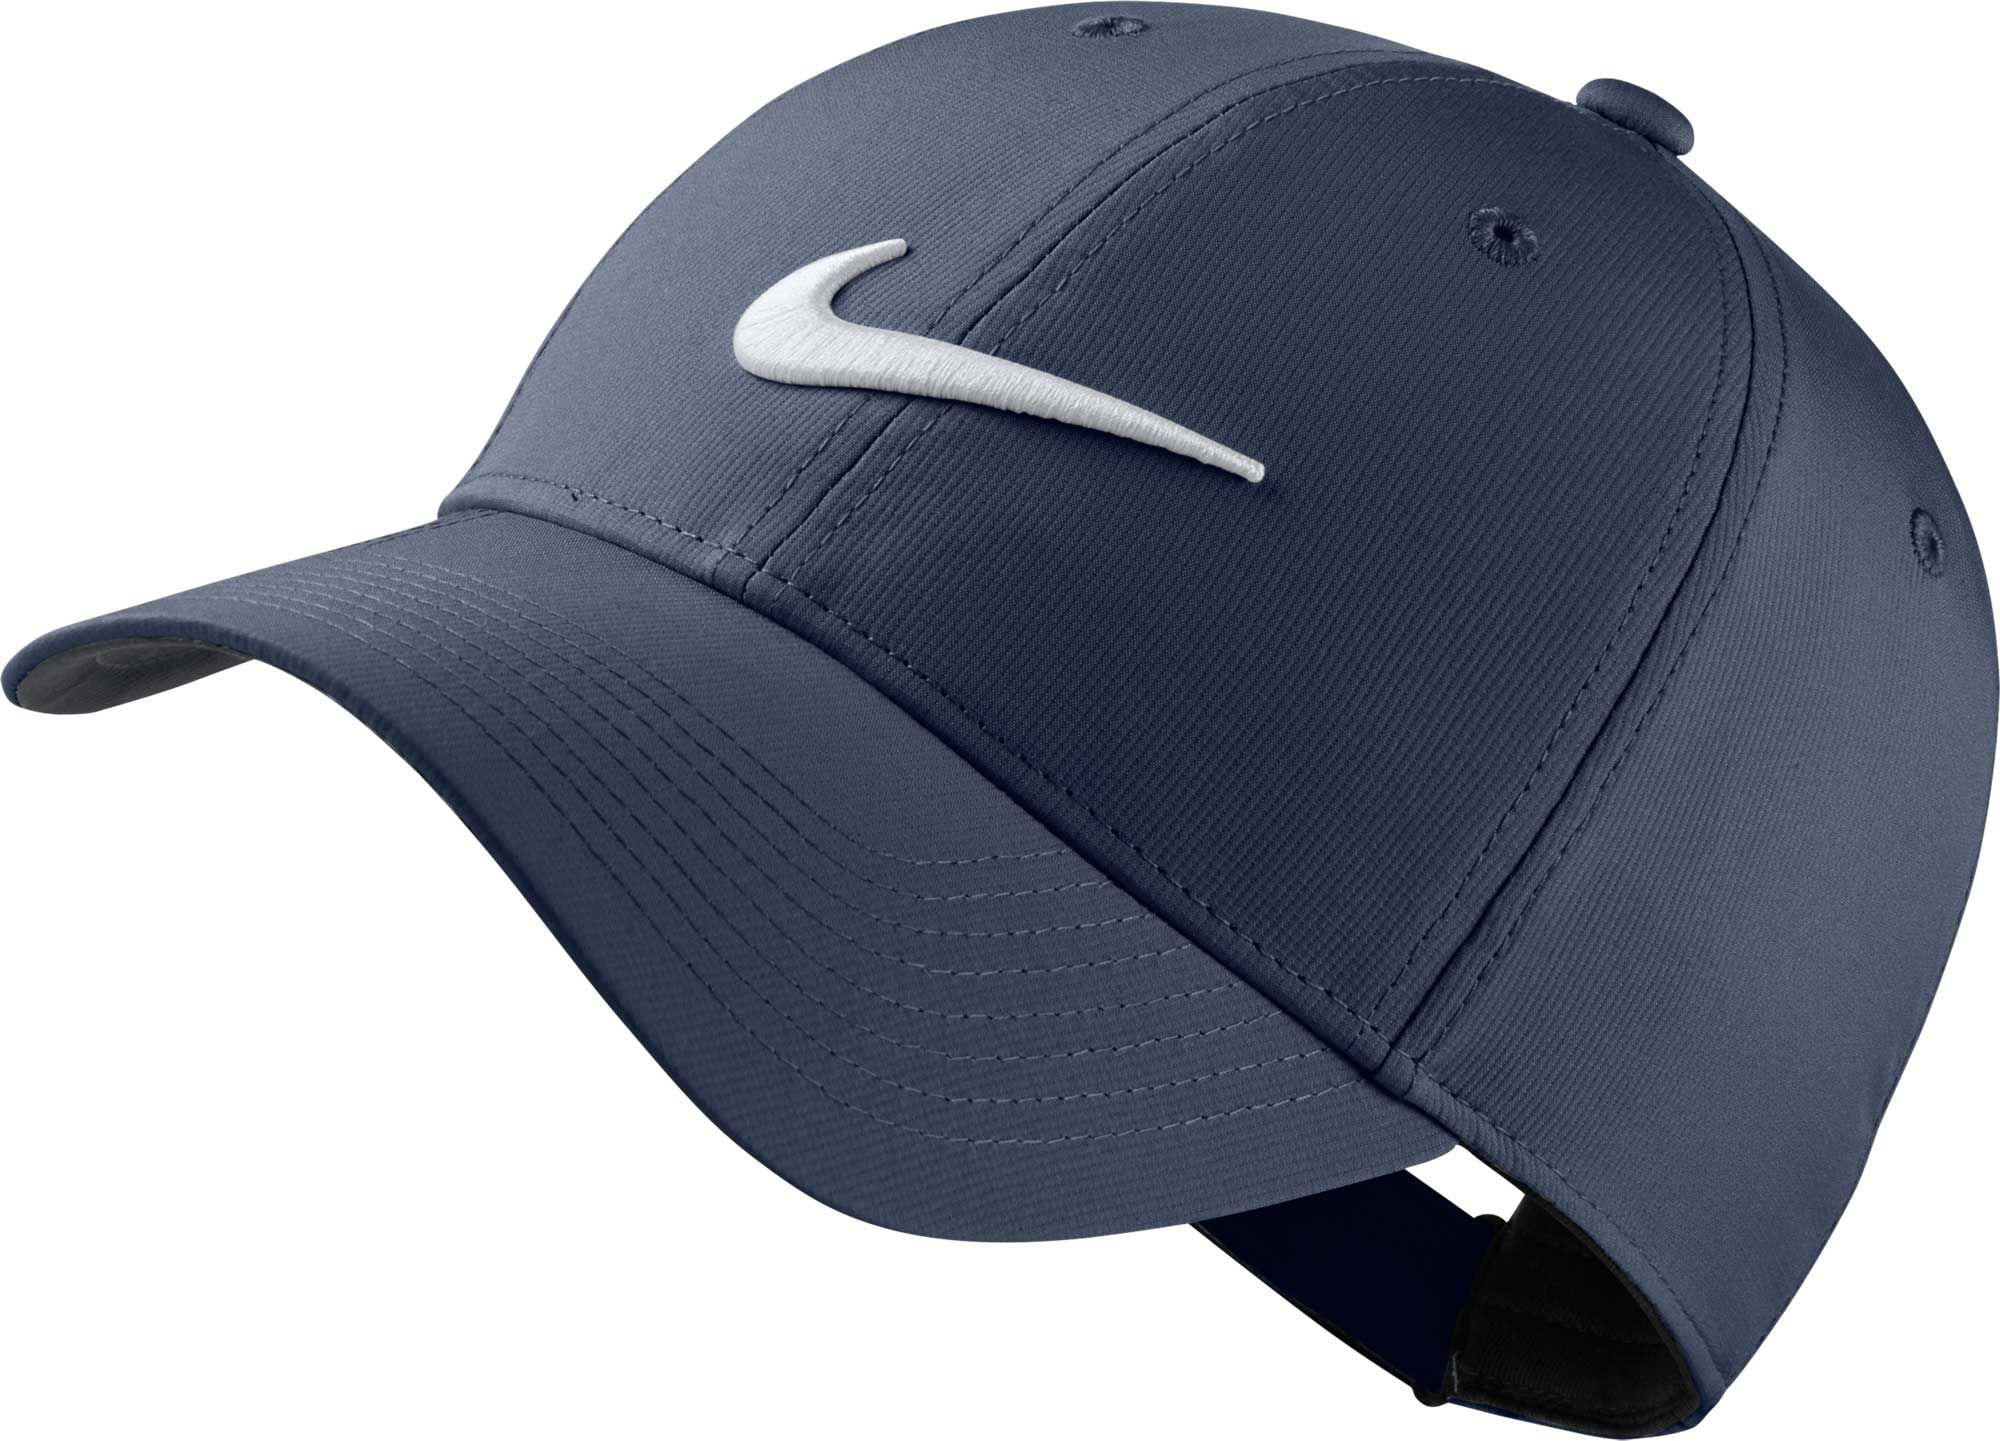 Lyst - Nike 2018 Legacy91 Tech Golf Hat in Blue for Men 078bc15626b